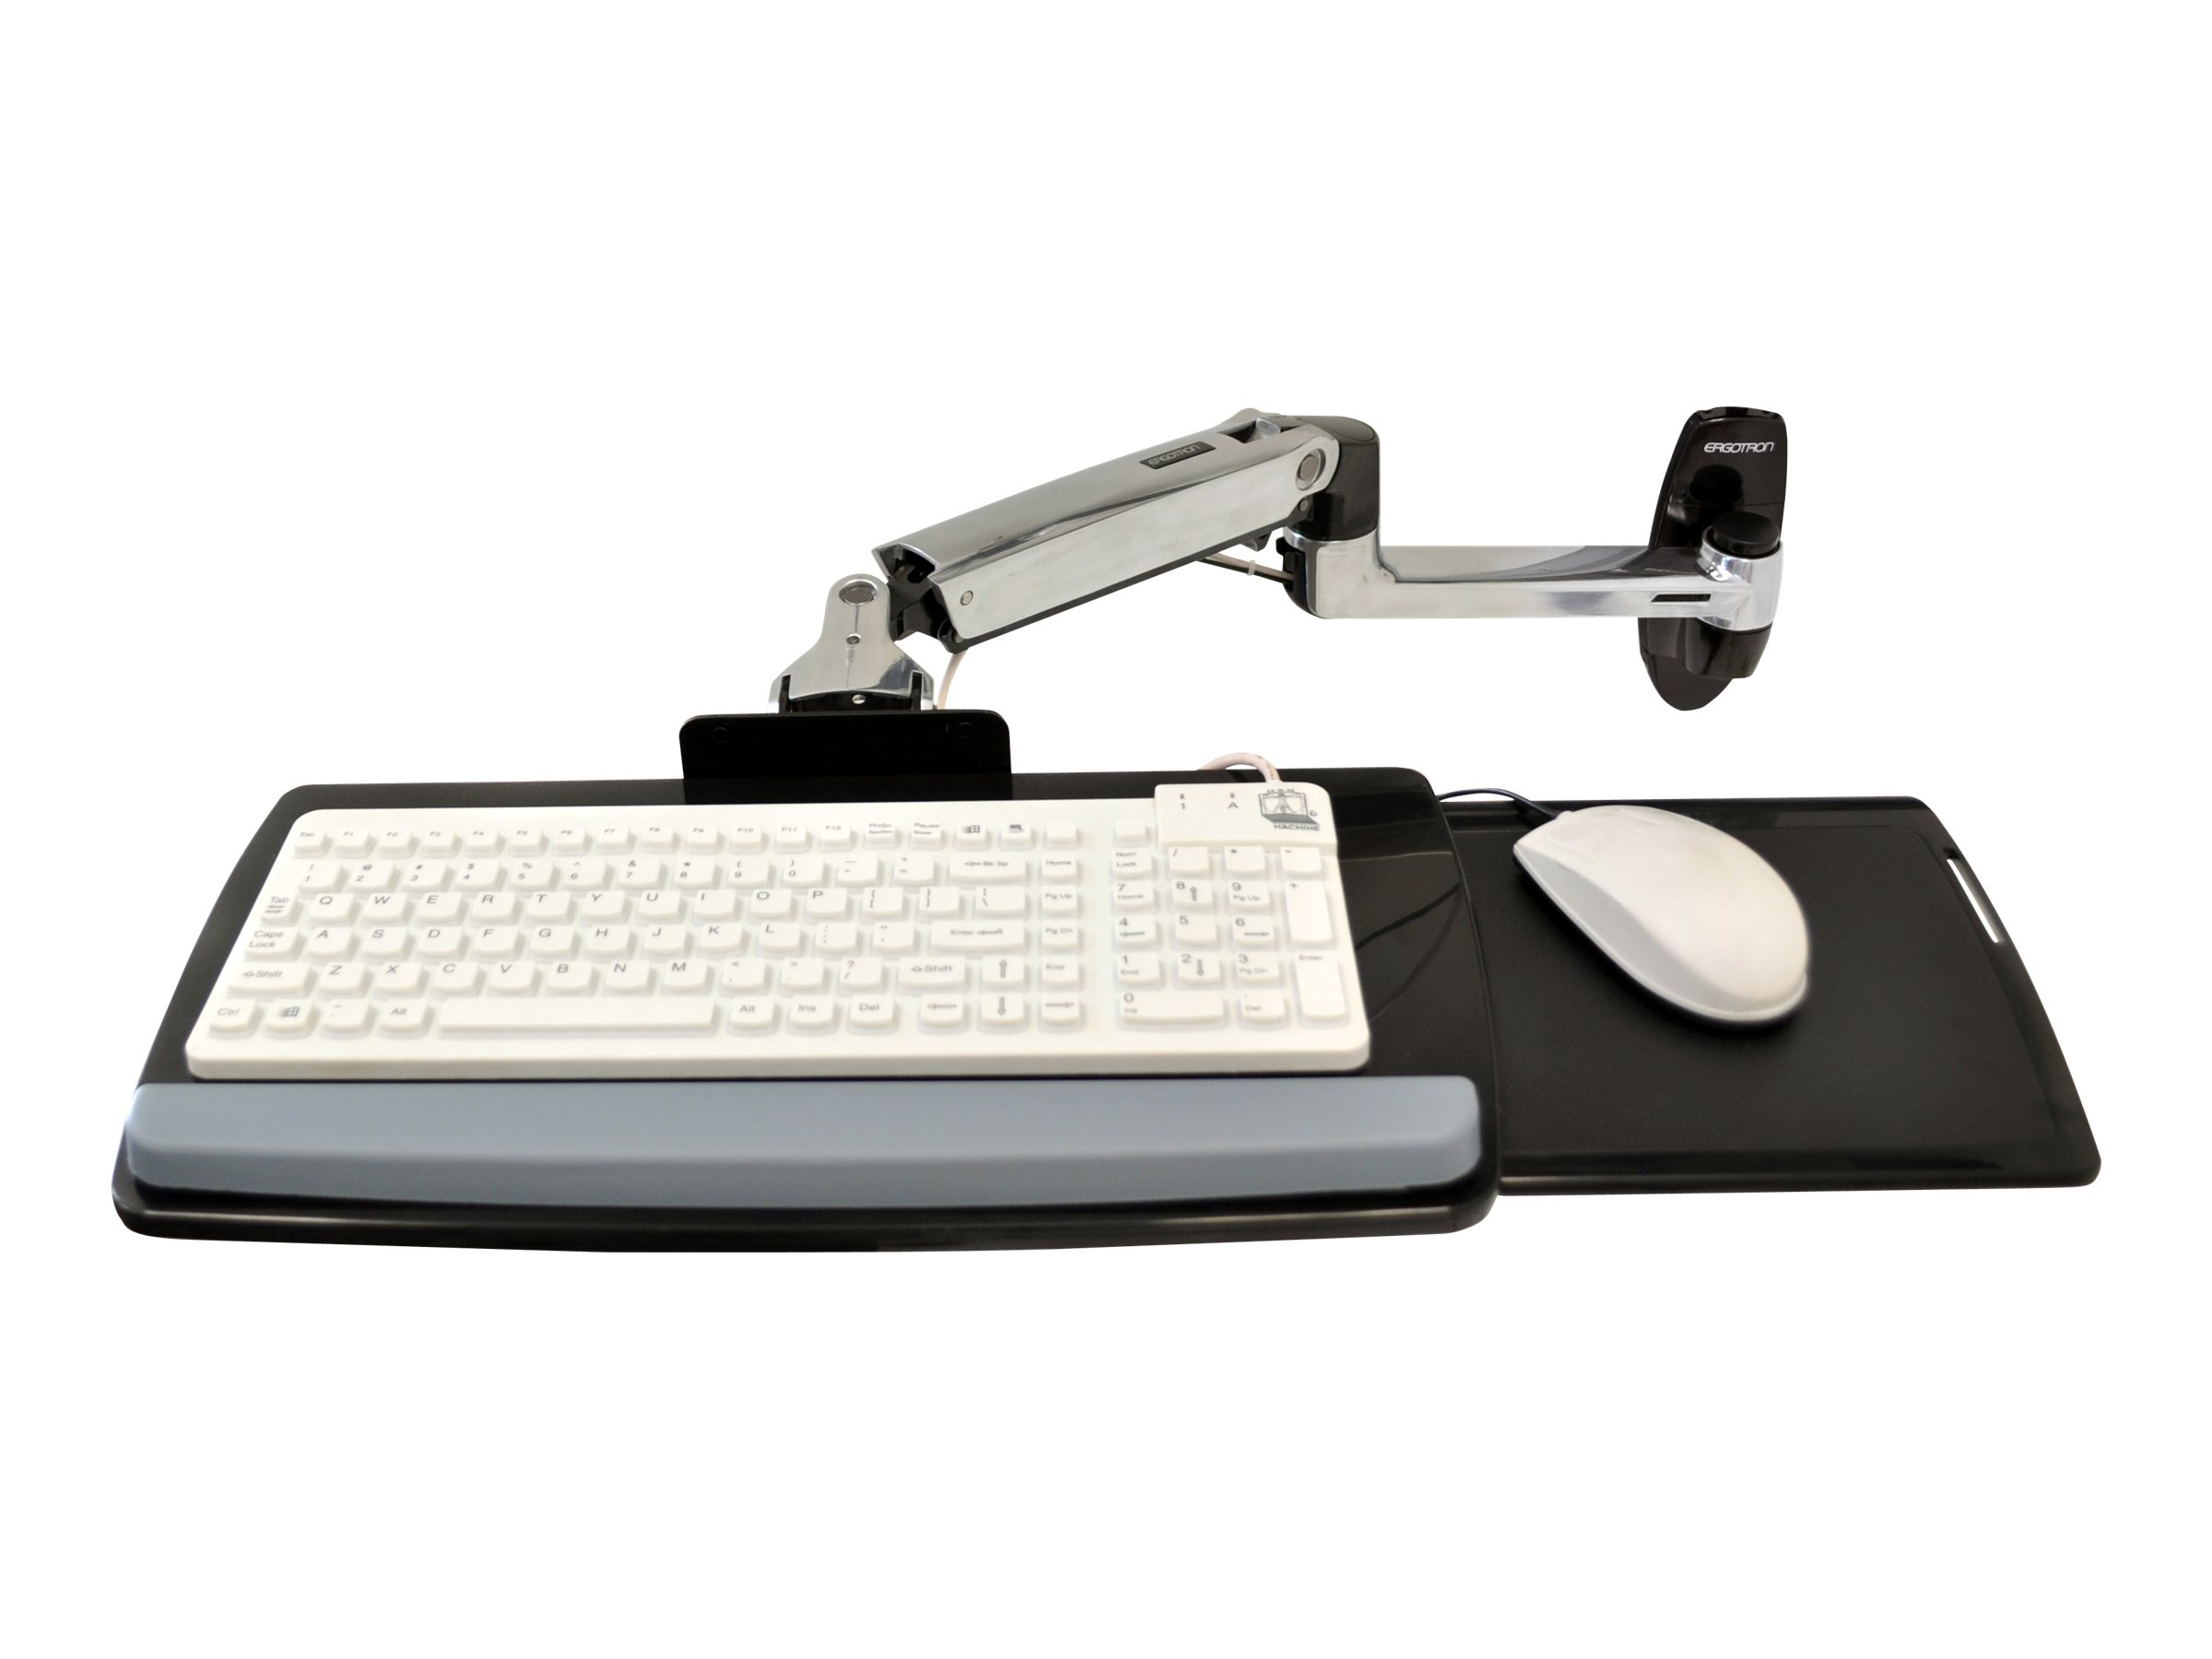 Ergotron LX Keyboard Arm Wall Mount